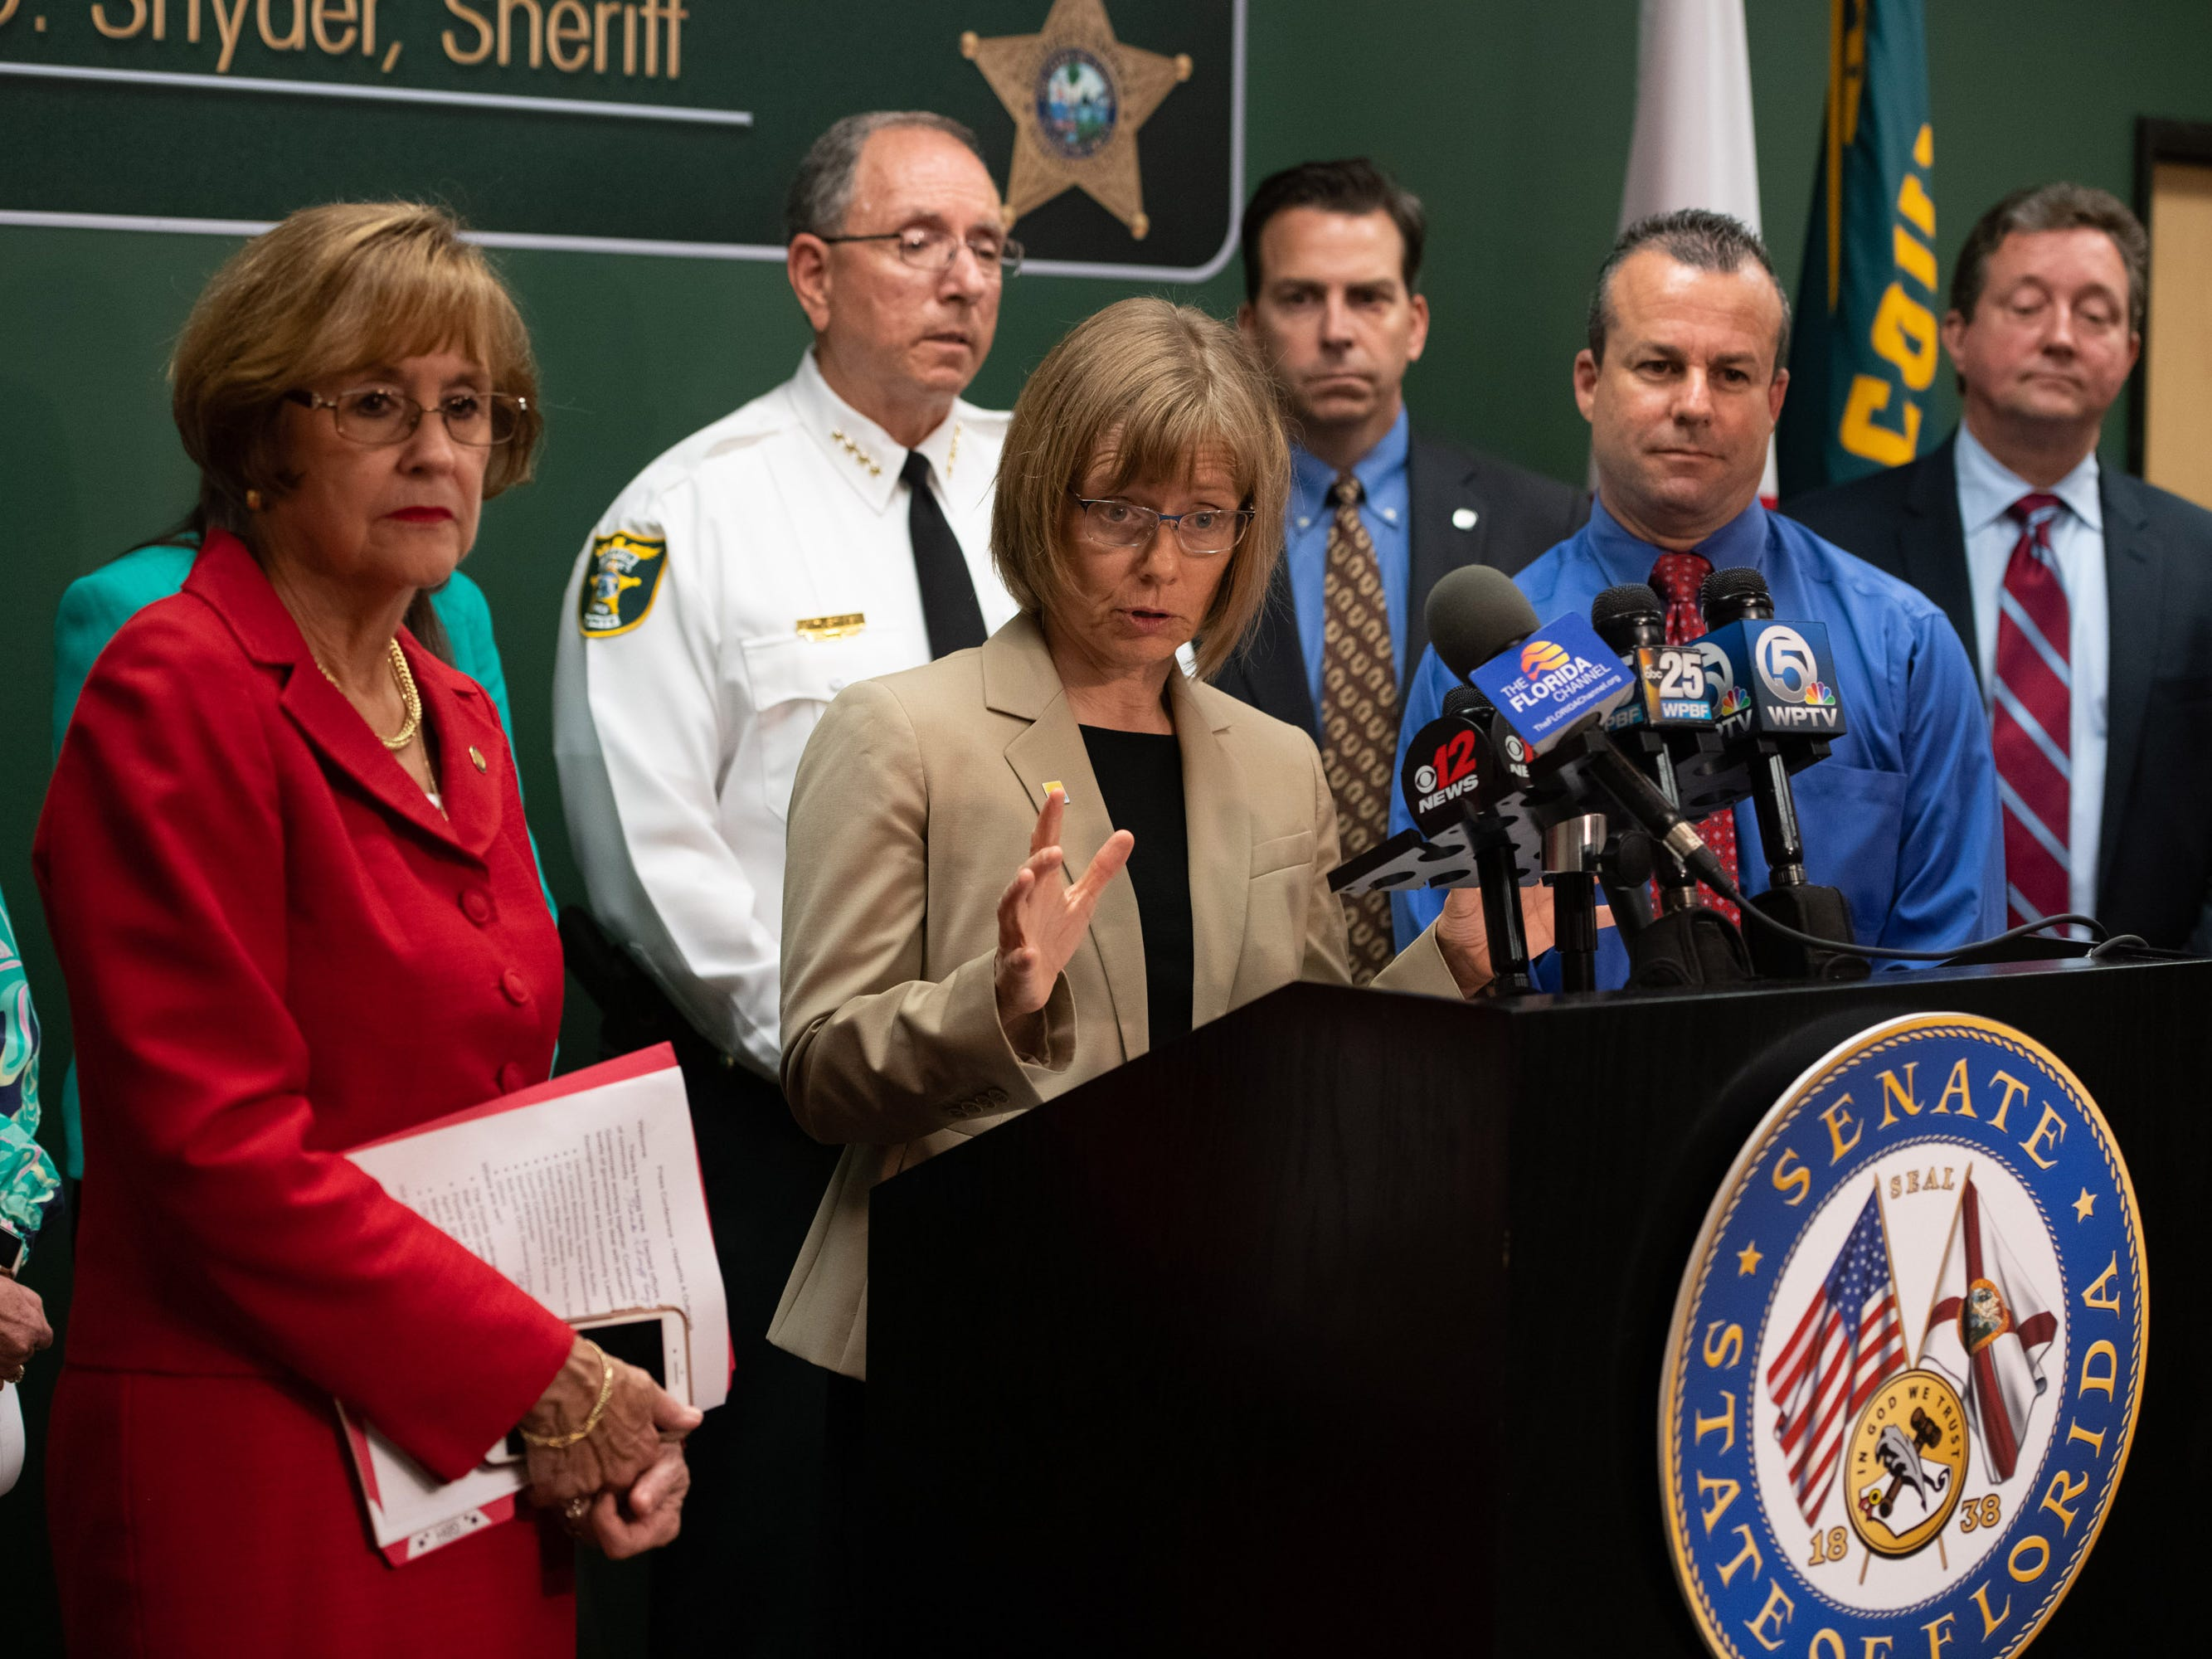 State Epidemiologist Dr. Carina Blackmore (center) speaks at the press conference regarding the recent hepatitis A outbreak in Martin County at Martin County Sheriff's Office on Friday, April 12, 2019, in Stuart.